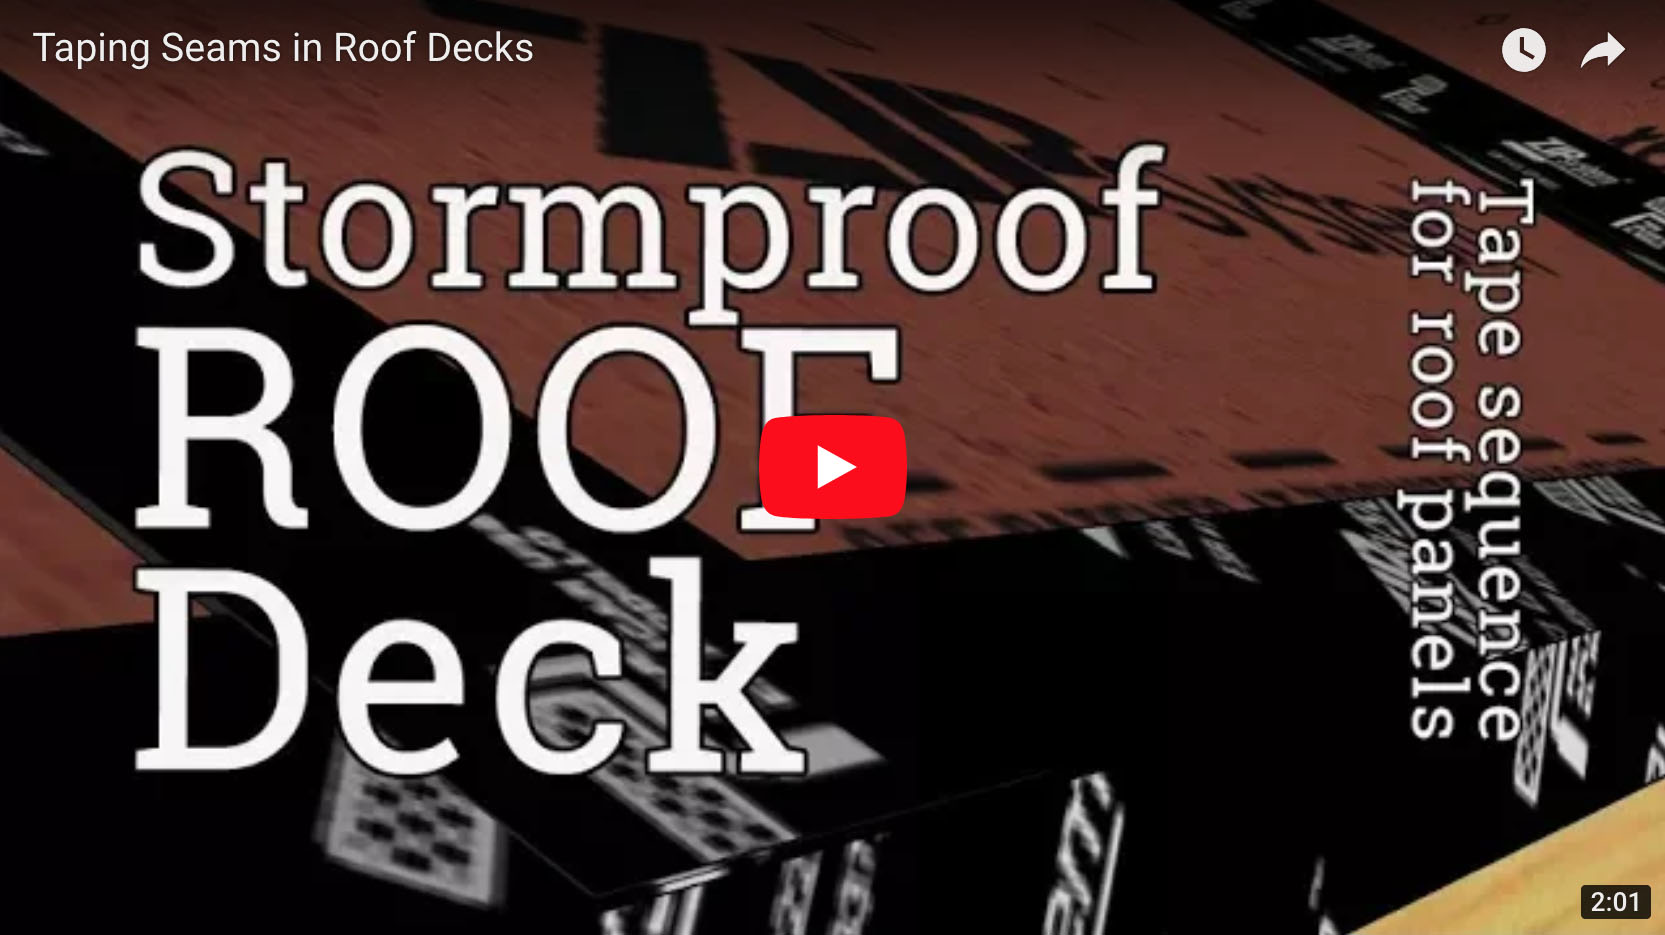 Stormproof Roof Deck Seam Taping Sequence Protradecraft